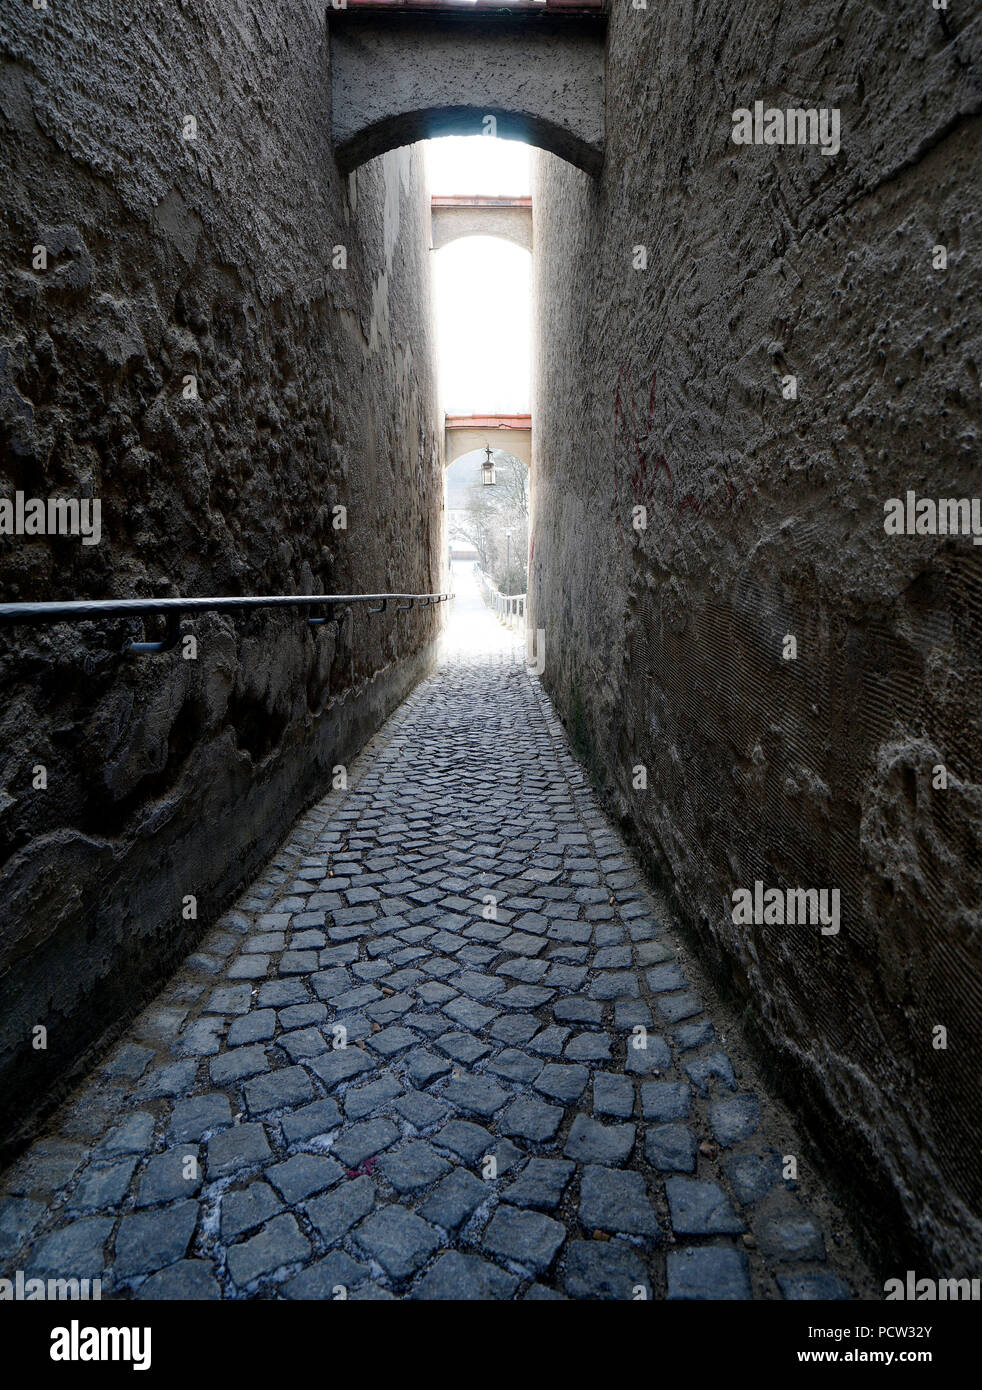 Germany, Bavaria, Upper Bavaria, Neuötting, narrow lane, paved, gloomy Stock Photo